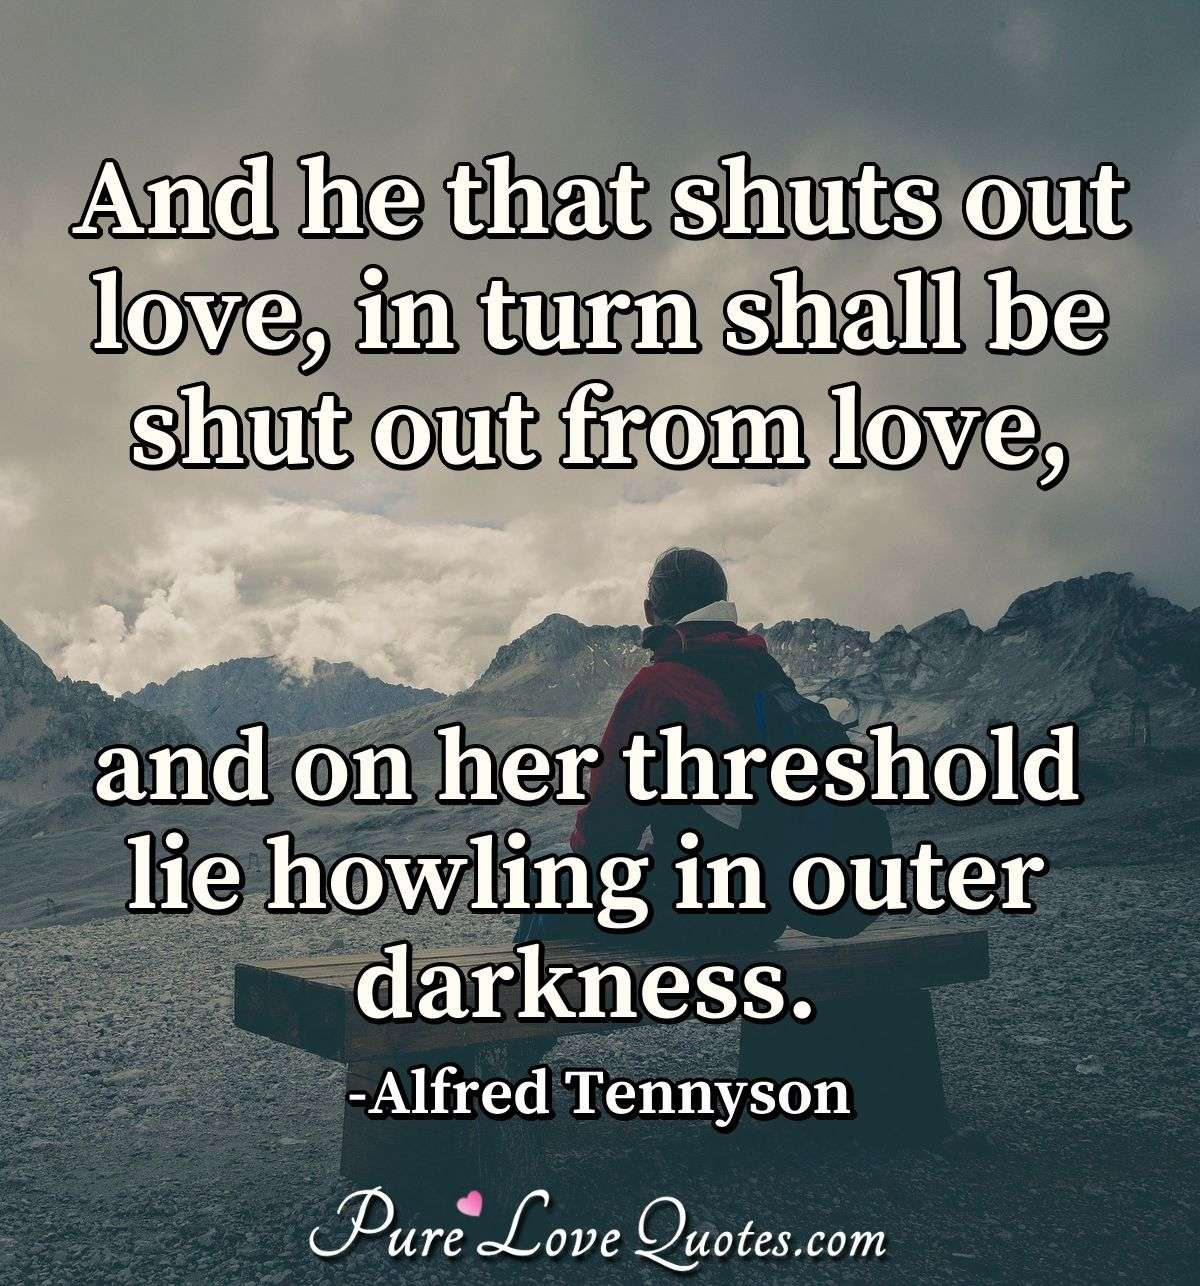 And he that shuts out love, in turn shall be shut out from love, and on her threshold lie howling in outer darkness. - Alfred Tennyson